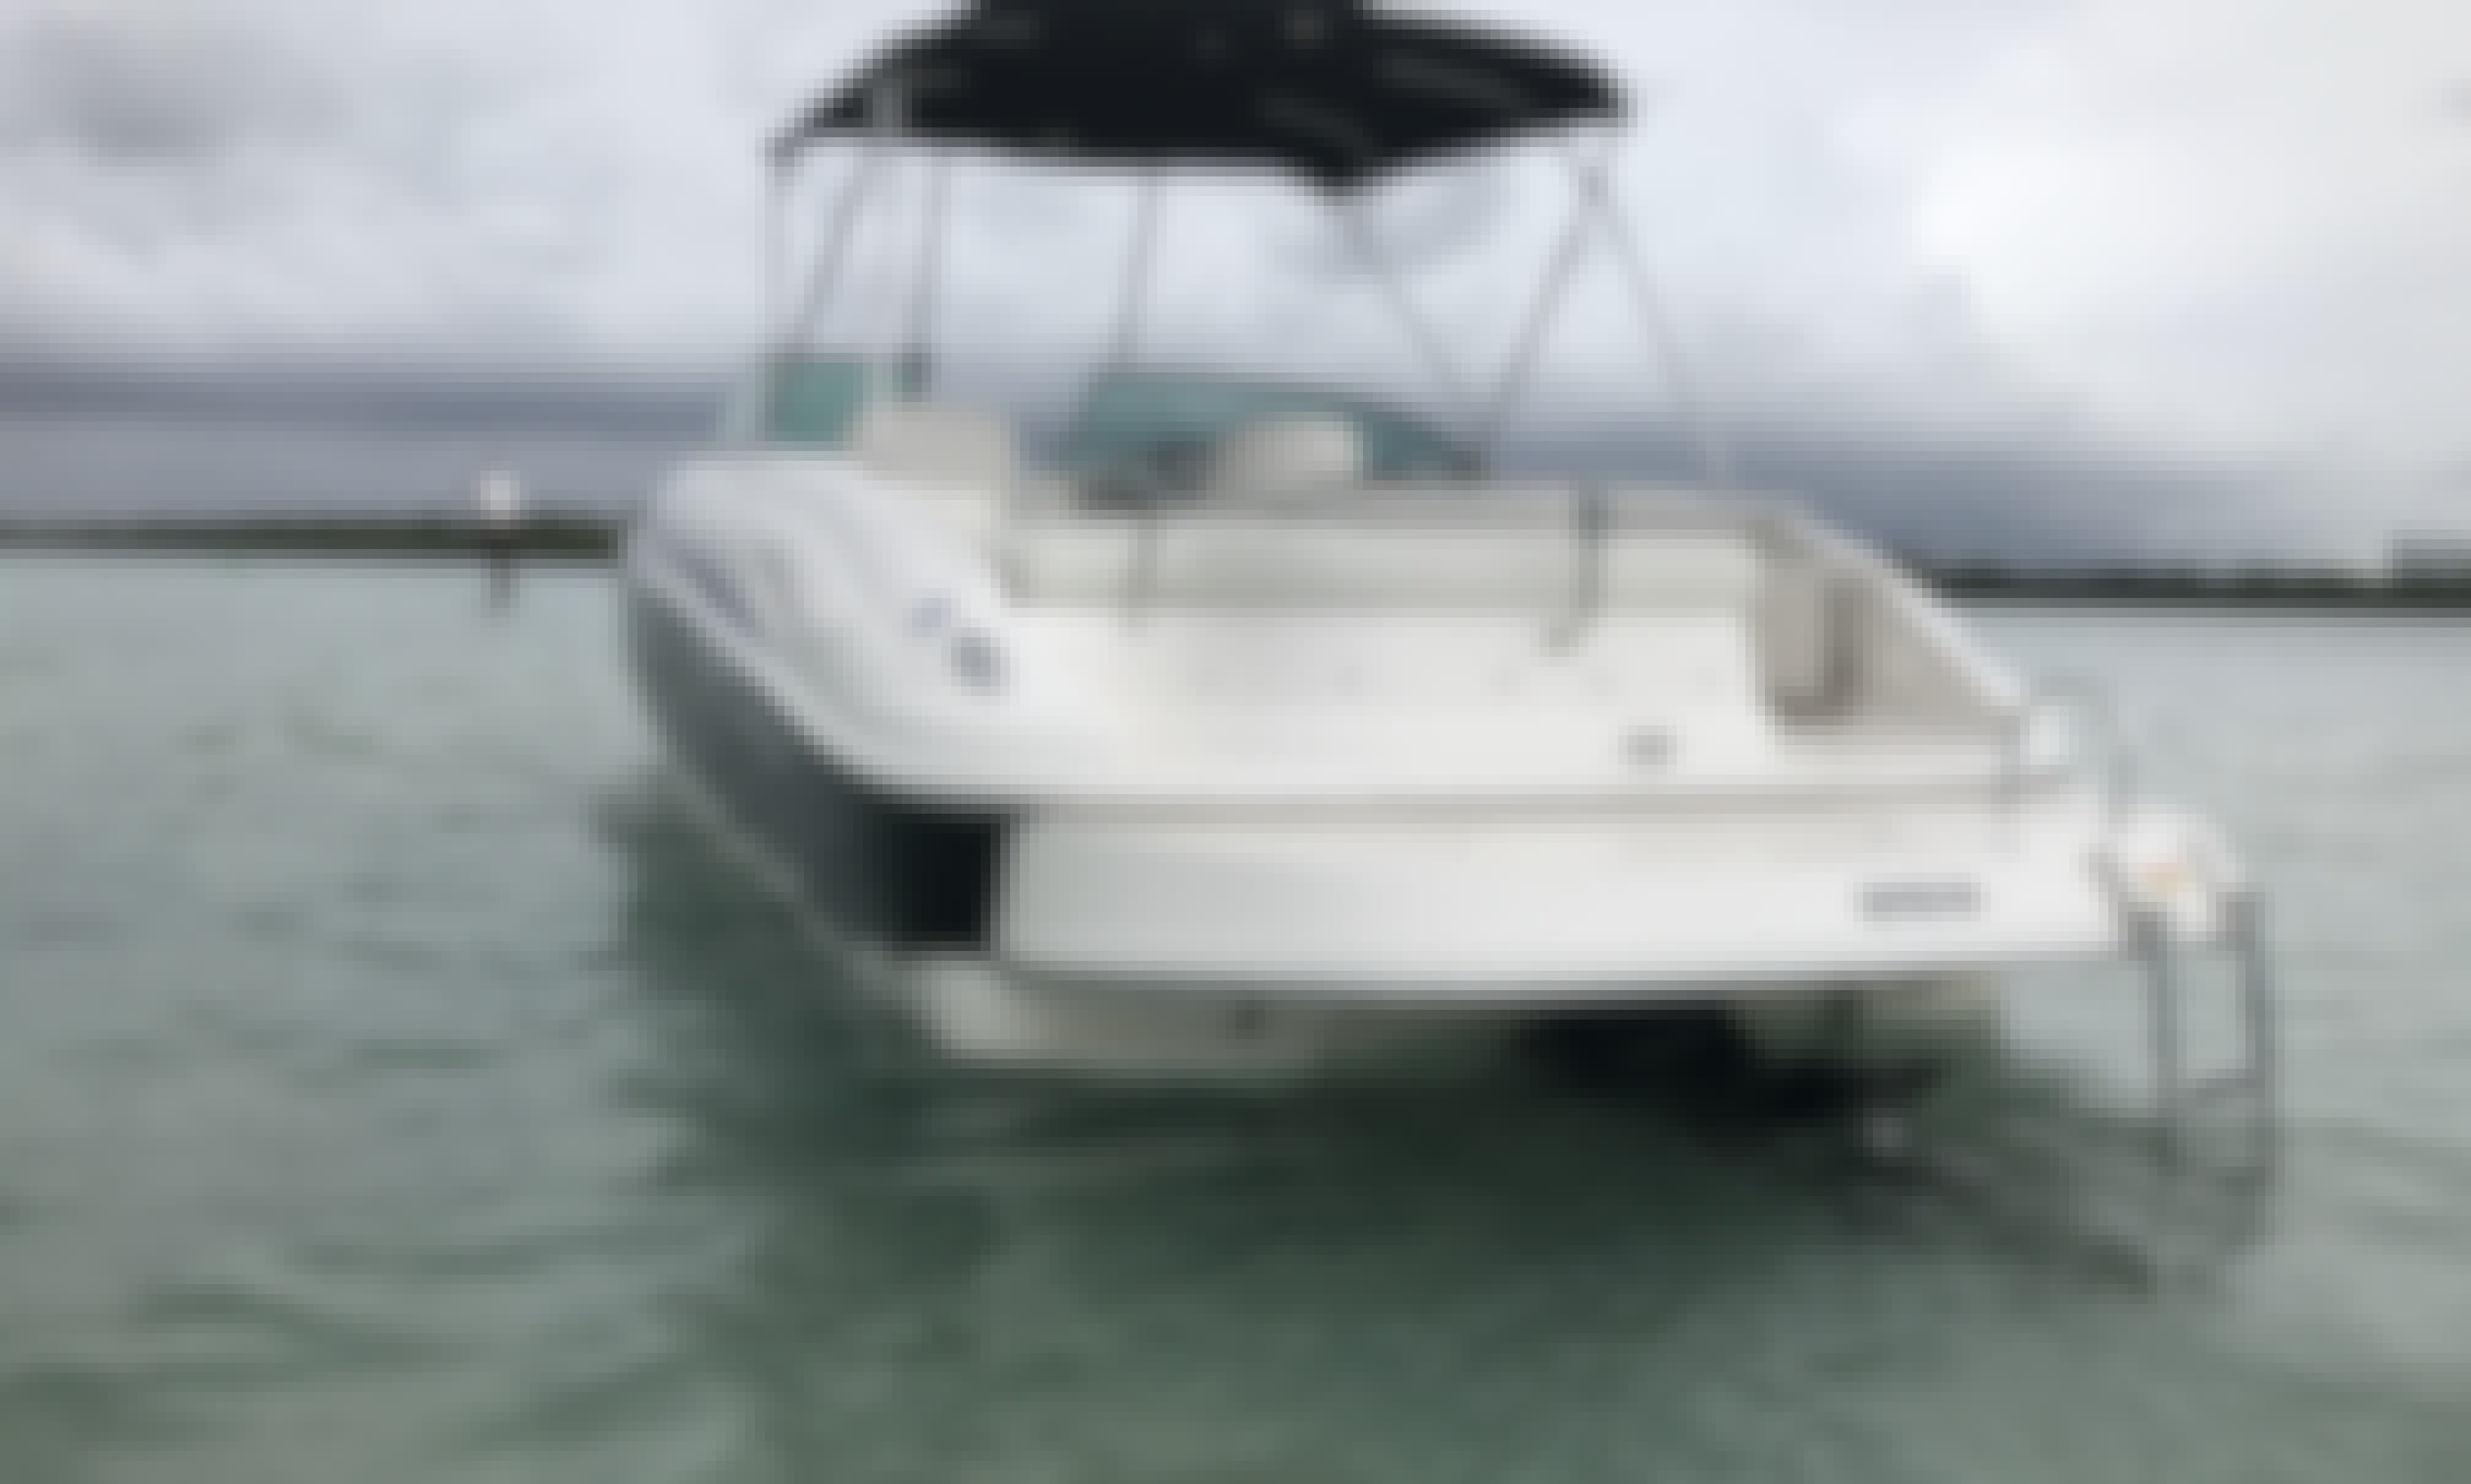 Perfect boat, lots of space, discounted for a limited time.